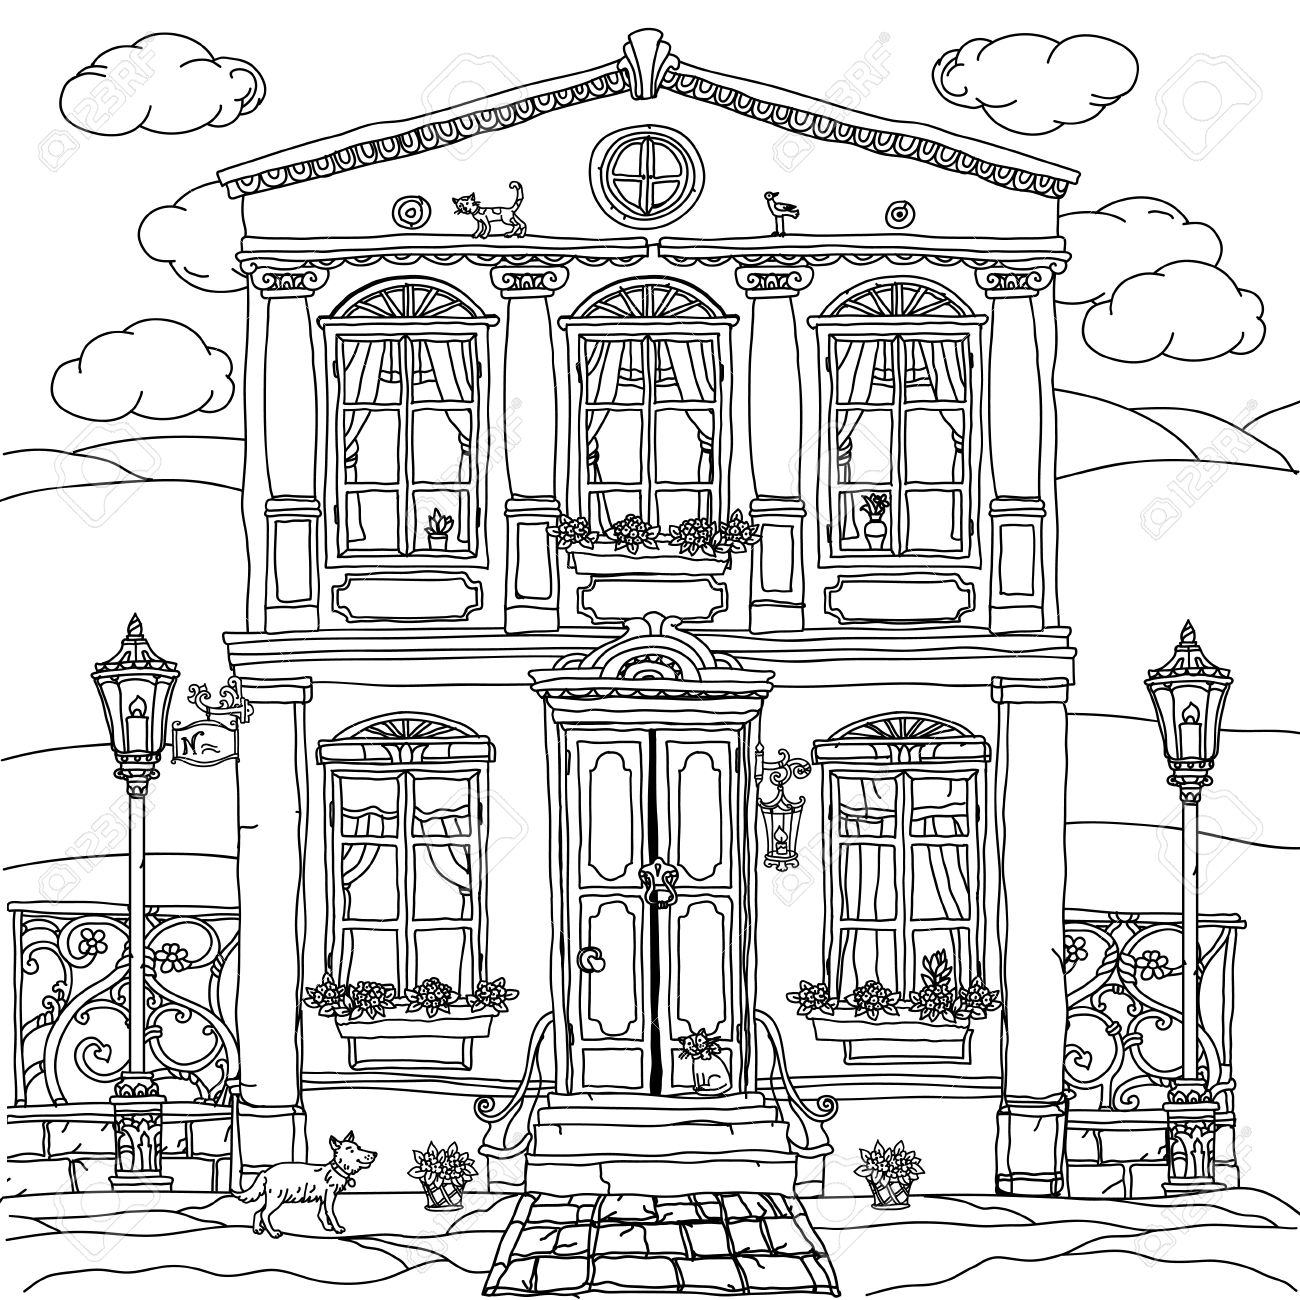 Me Val House Drawing At Getdrawings